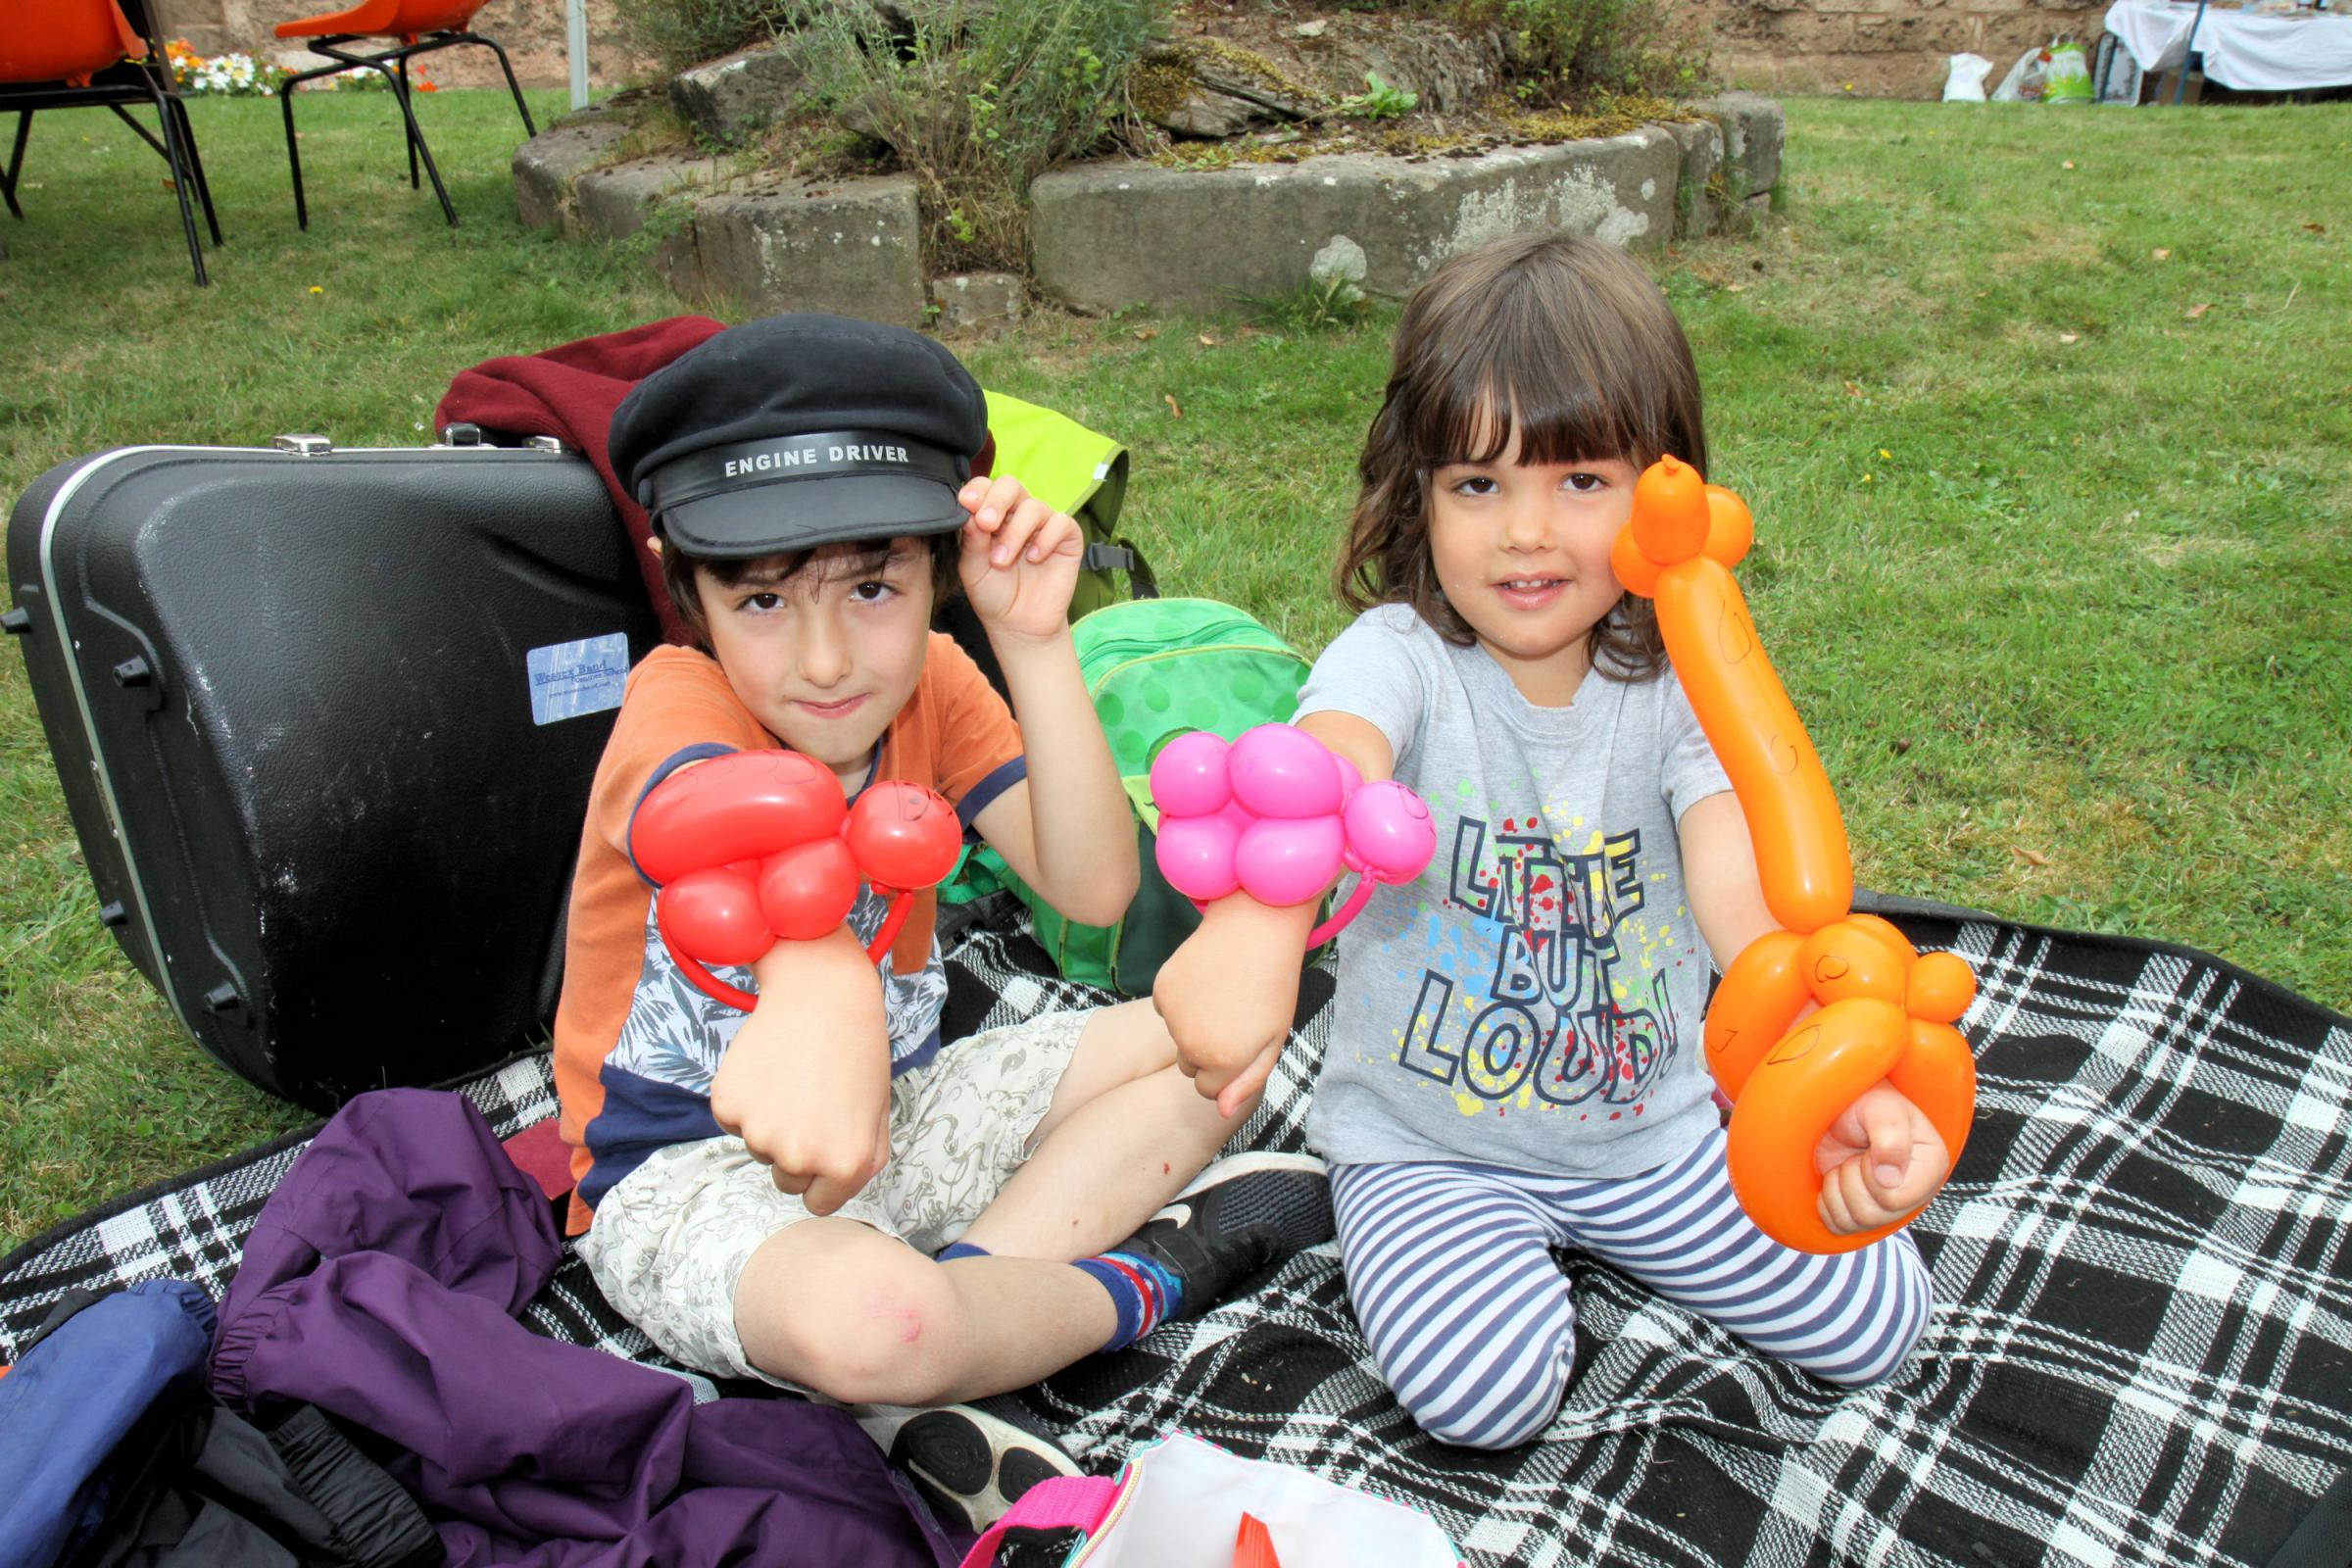 William and Florence Holmes have a picnic and play with the balloon figures made for them at the fete.